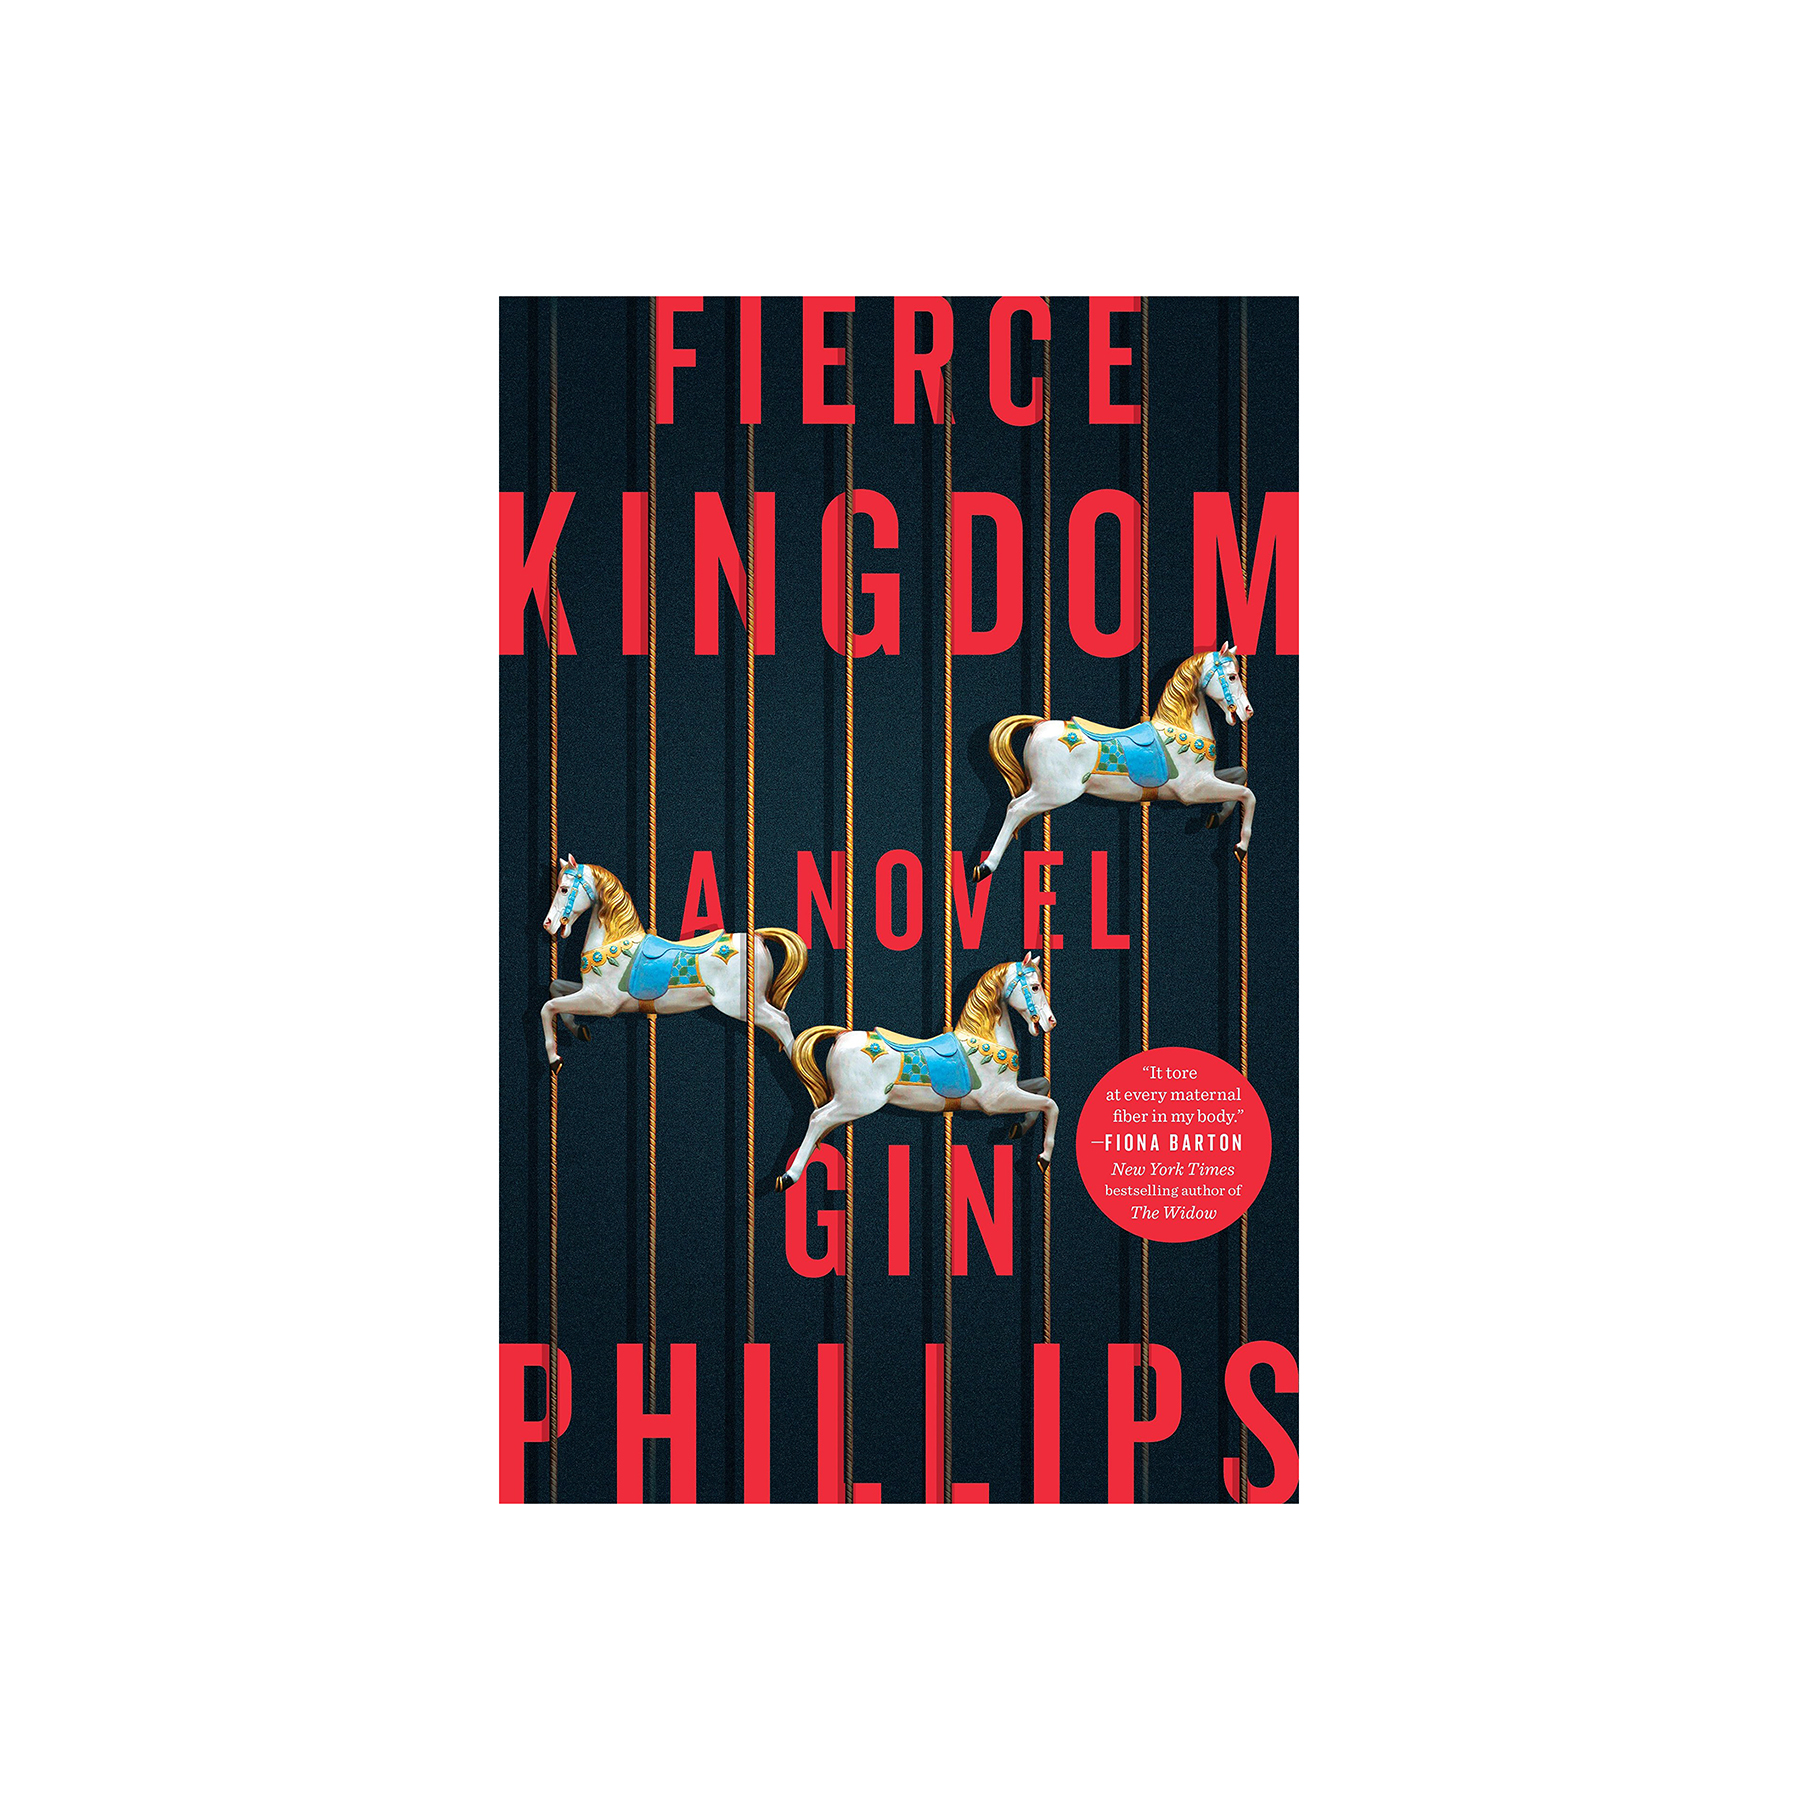 fierce-kingdom-phillips